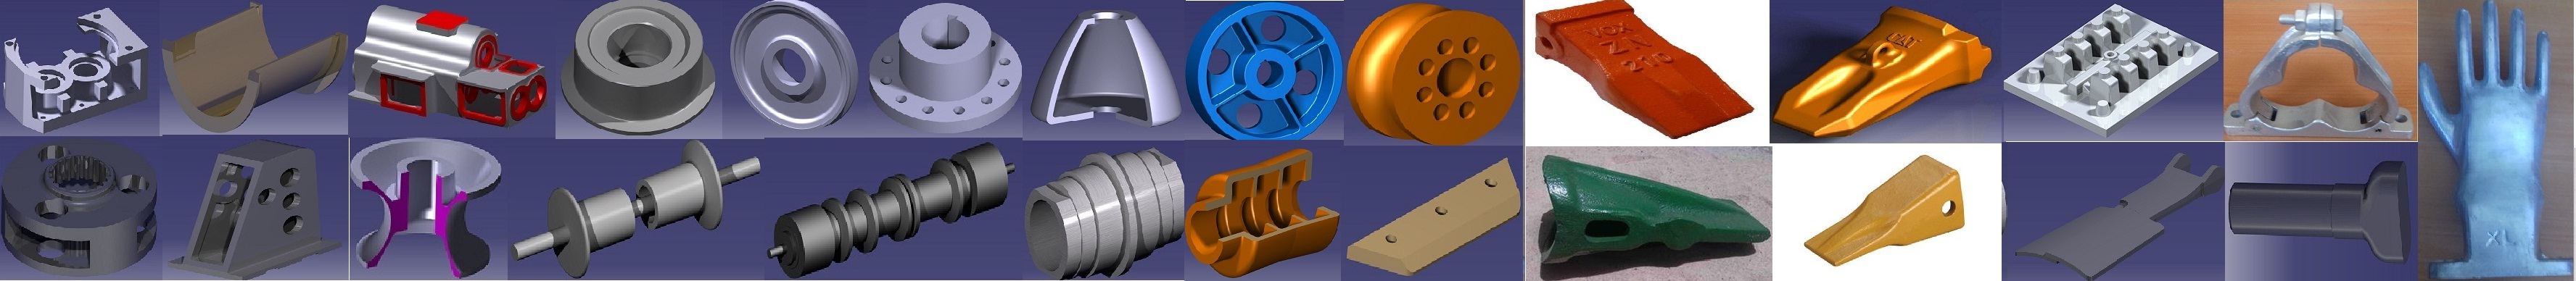 Gearbox-Roller & Pulley-Aluminum Pattern-Nail Loaders